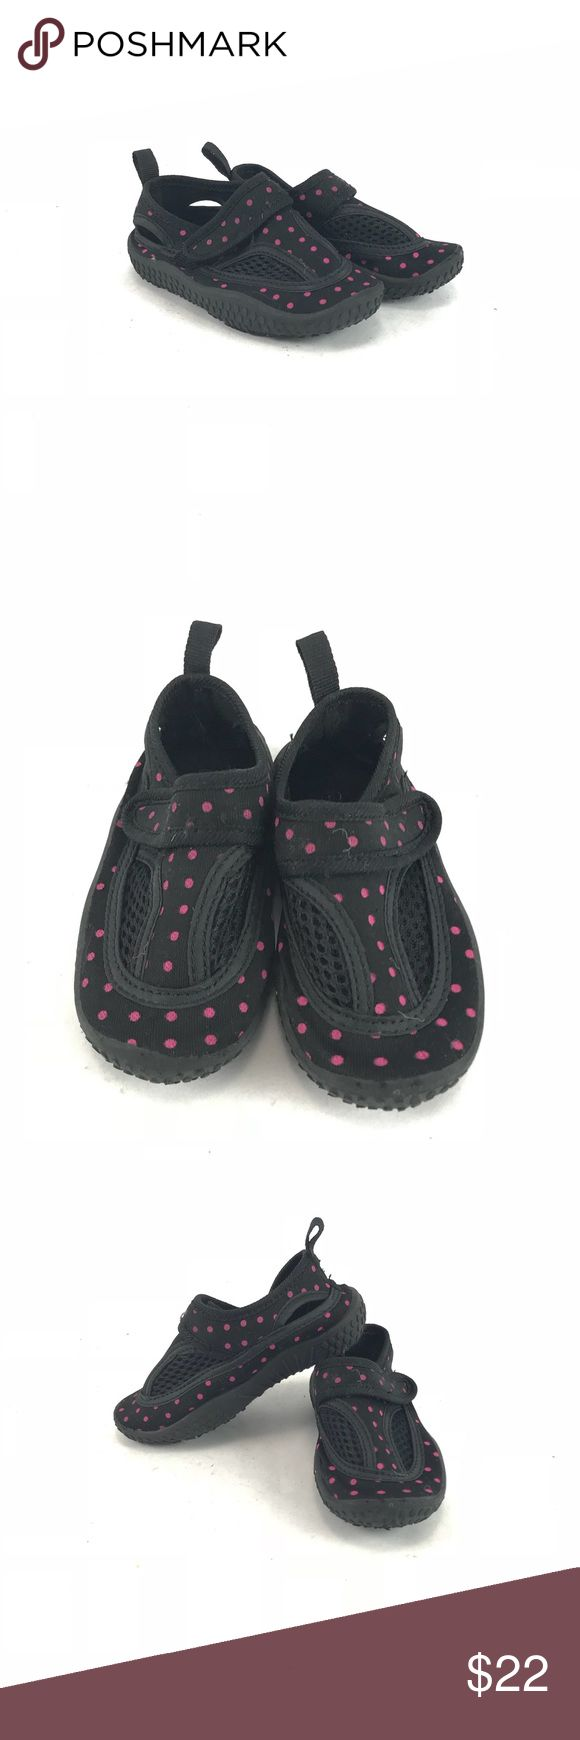 Black with pink polka dot Oxide girls water shoes The-owned girls black with pink polka dot oxide water shoes. Toddler girls size 6.  See pictures for condition. oxide Shoes Water Shoes